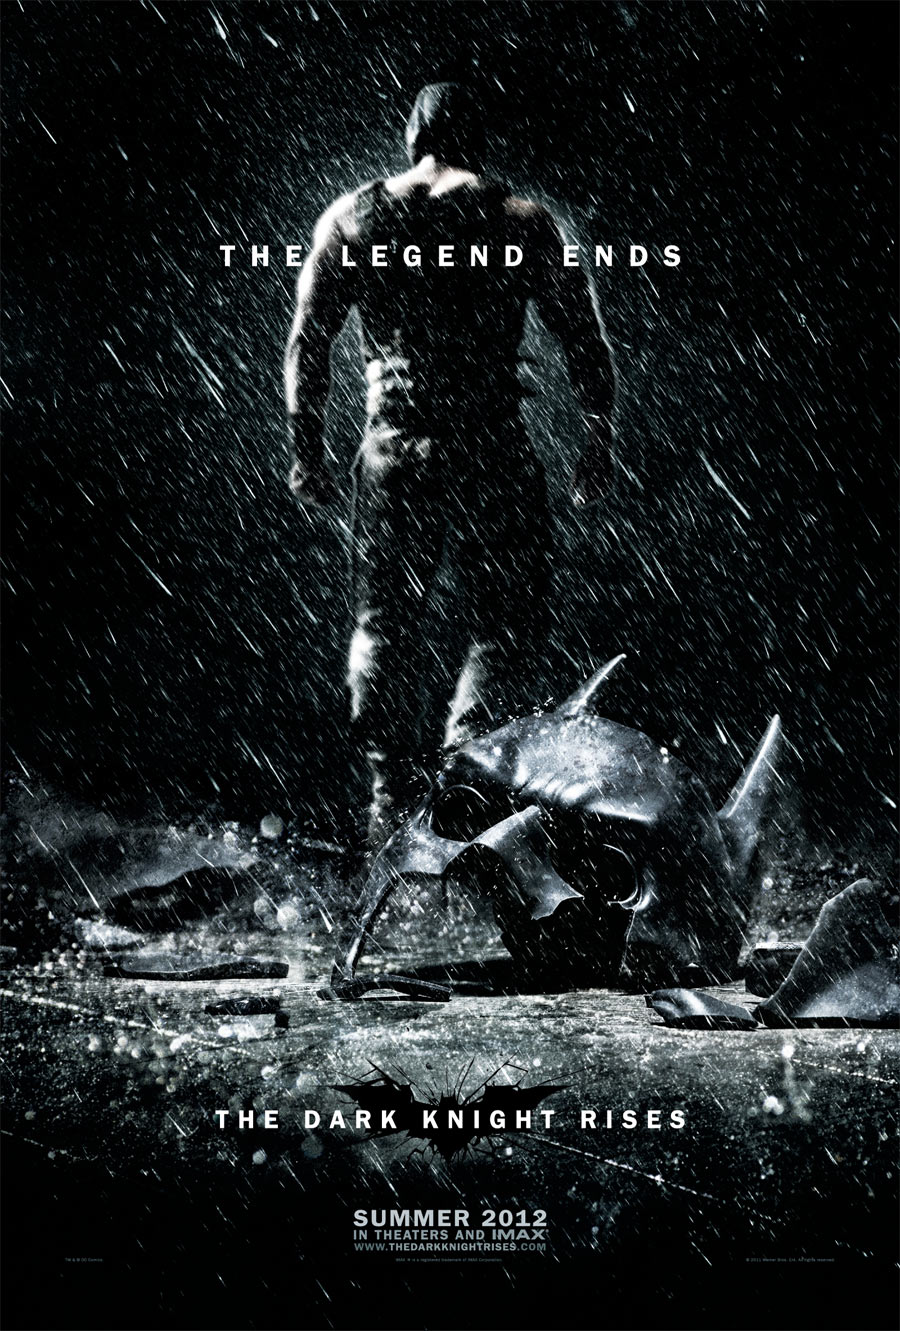 The Dark Knight Rises (new trailer)